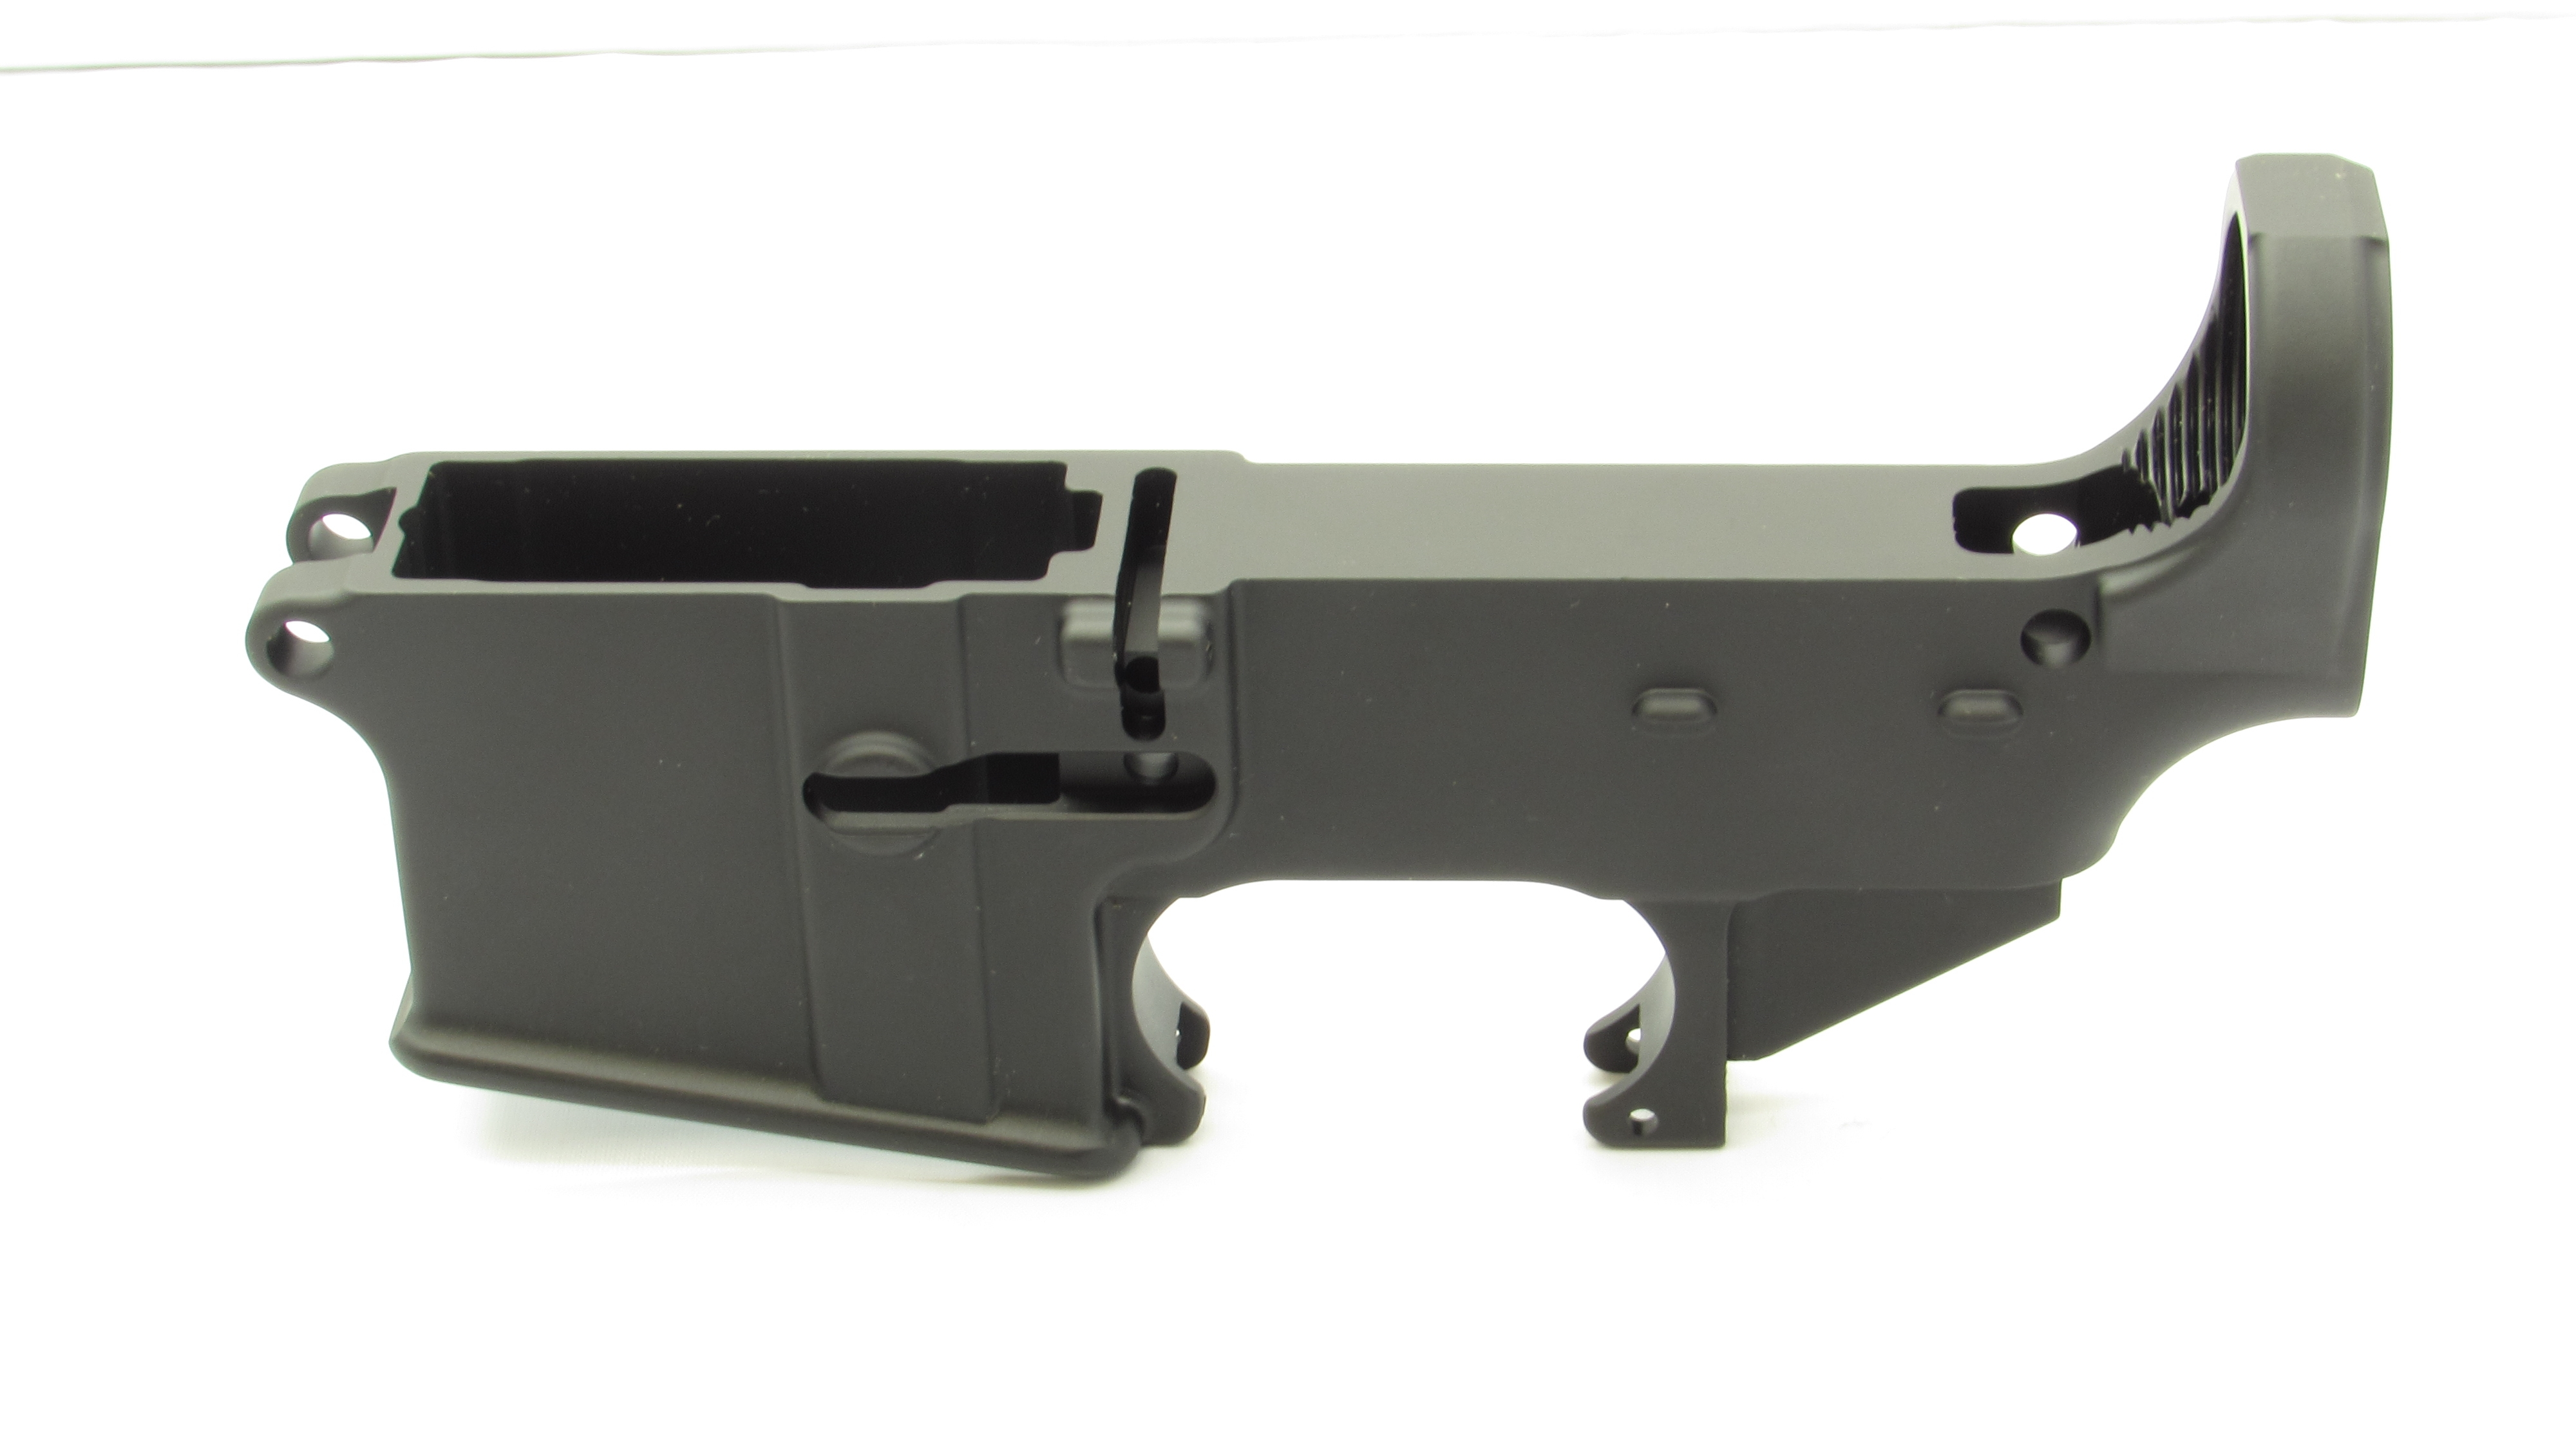 Gorilla Machining AR15 80% Lower Receiver Frame Cerro Forging